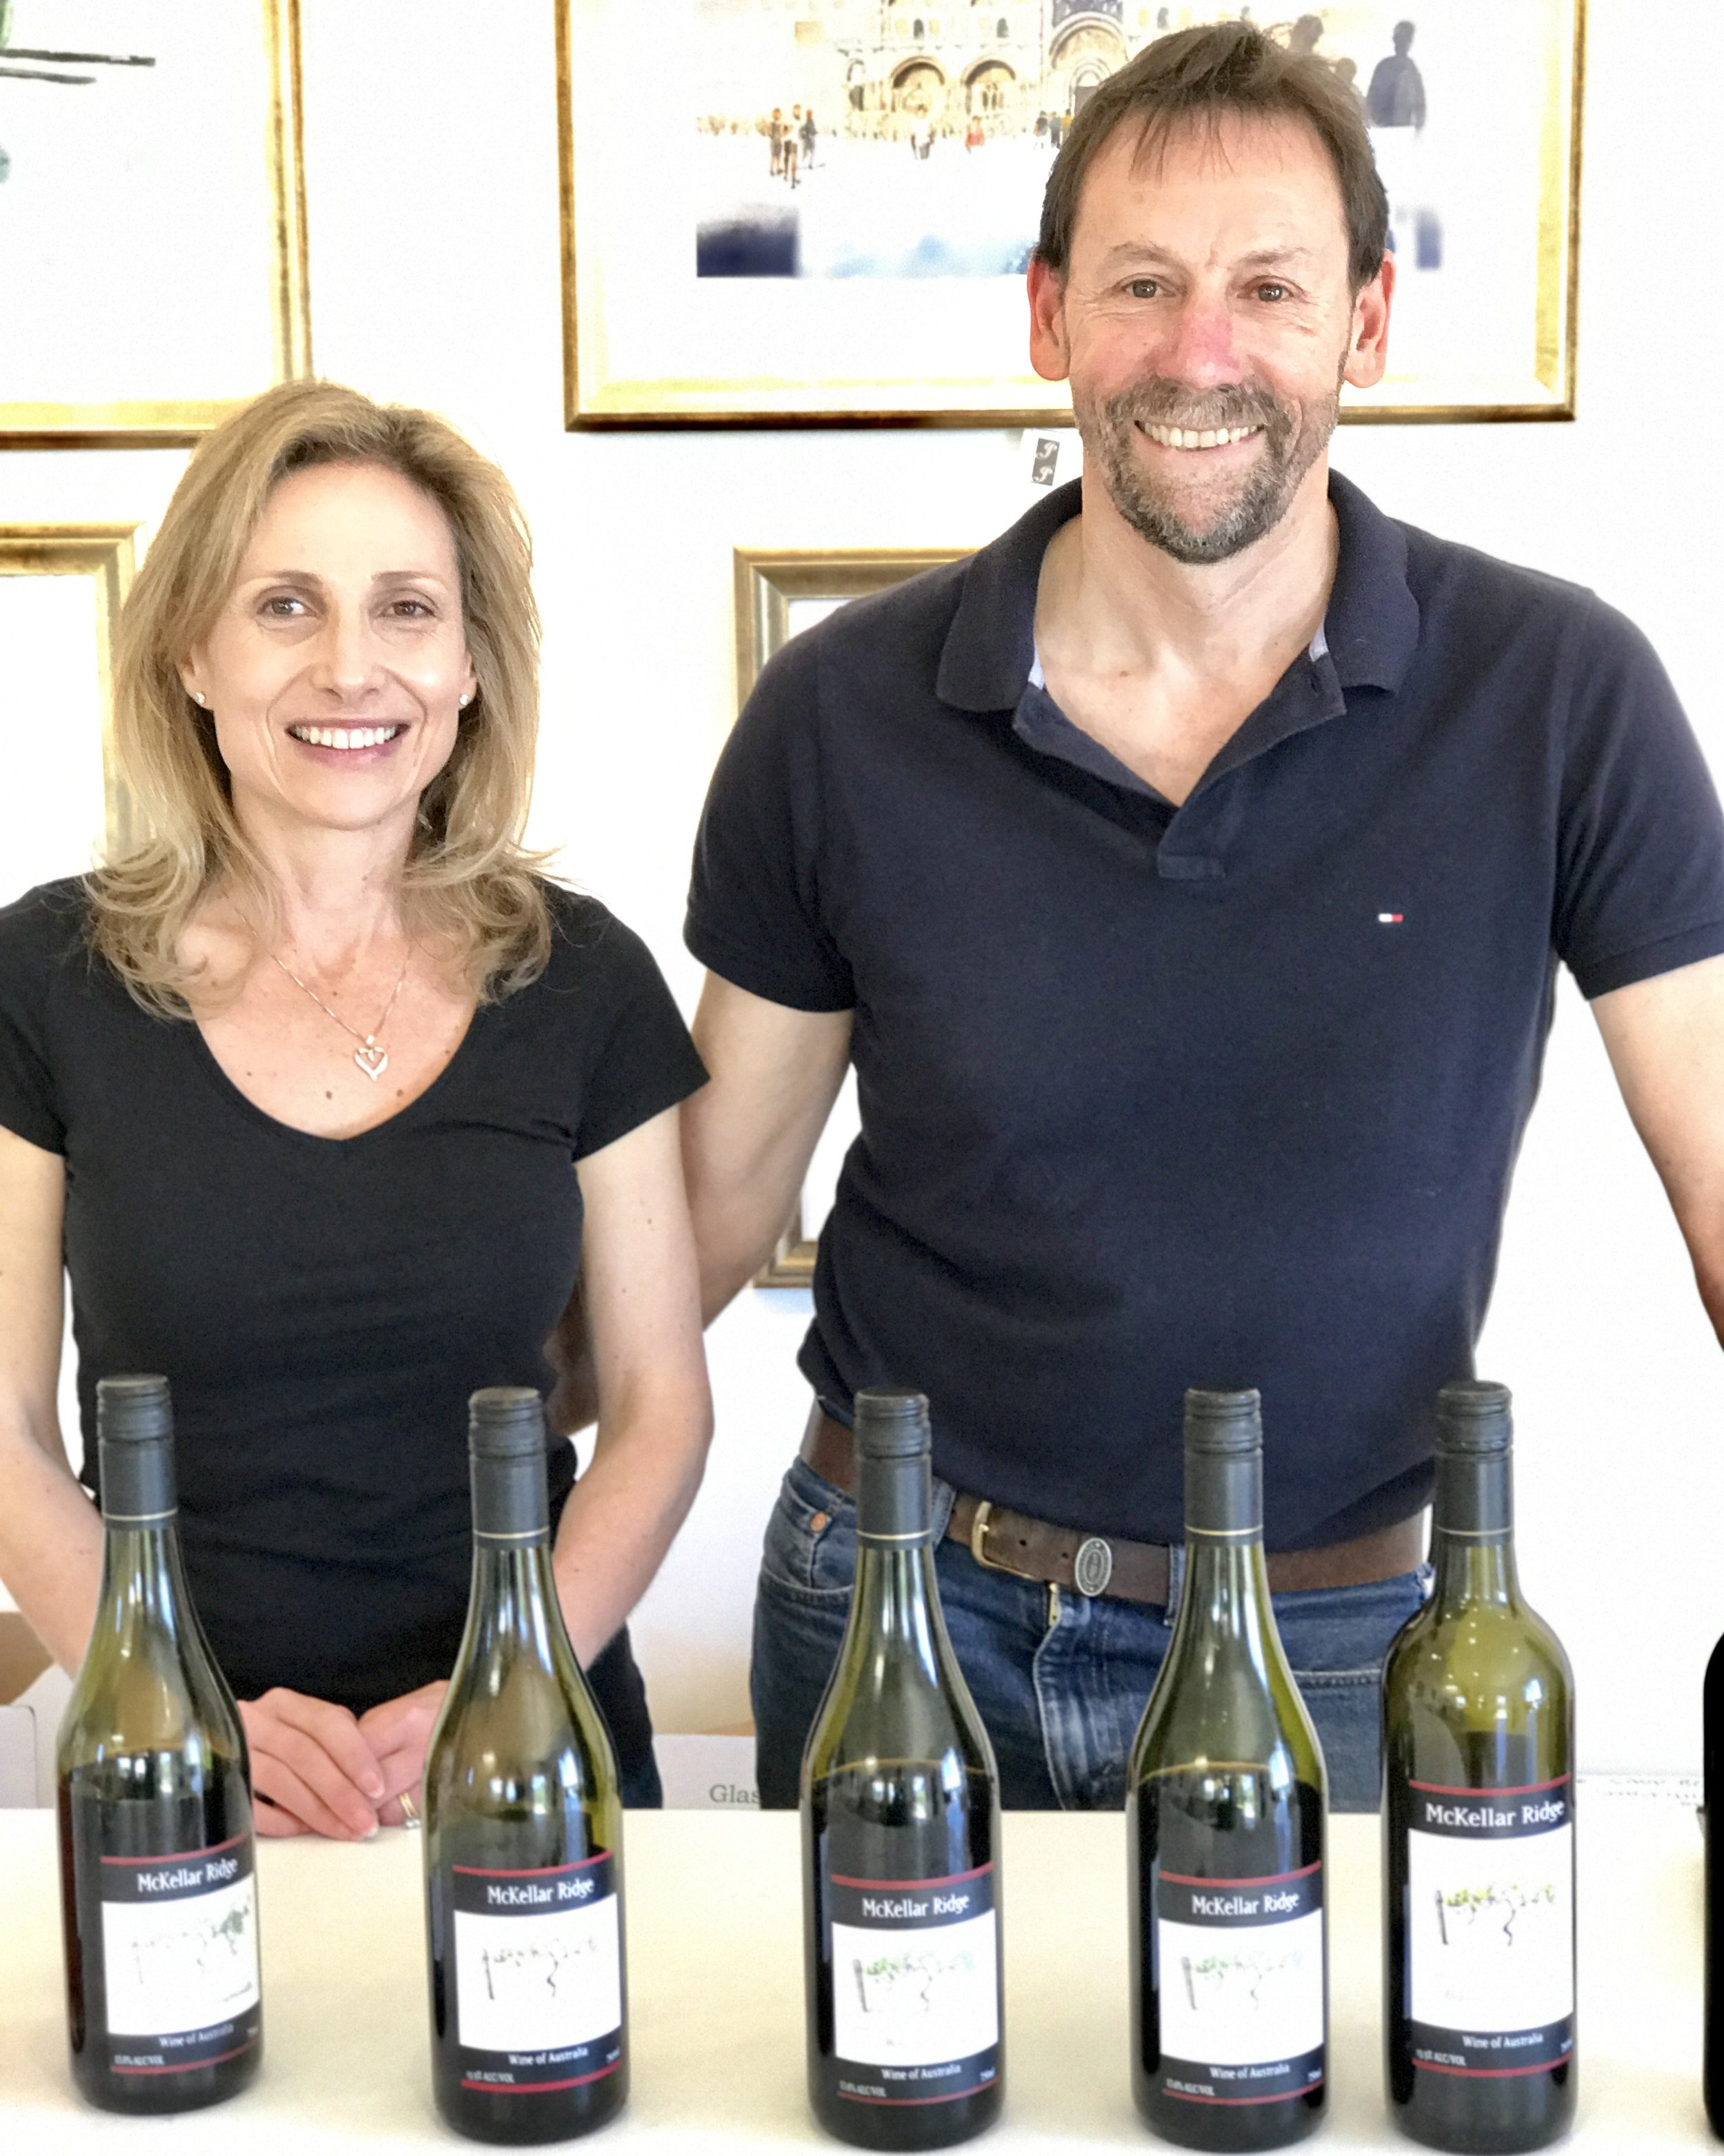 Marina and John Sekoranja at the Mckellar Ridge Cellar Door